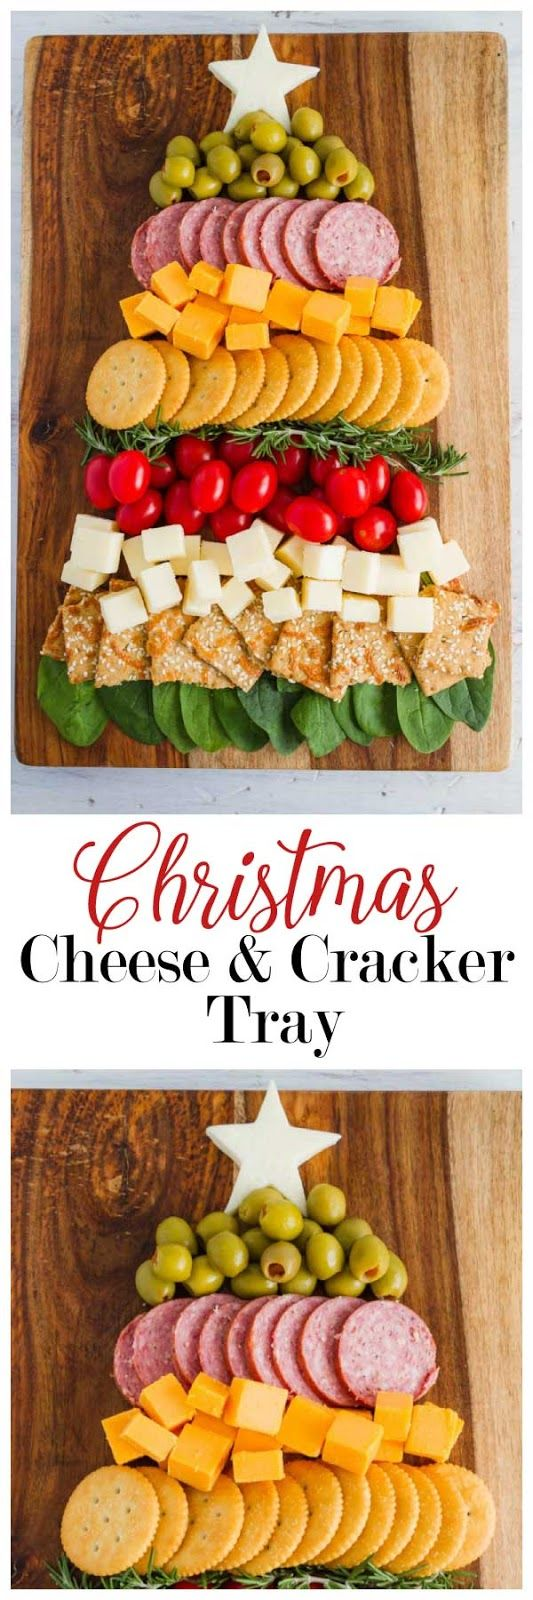 Christmas Tree Cheese And Cracker Tray | By My Name Is Snickerdoodle